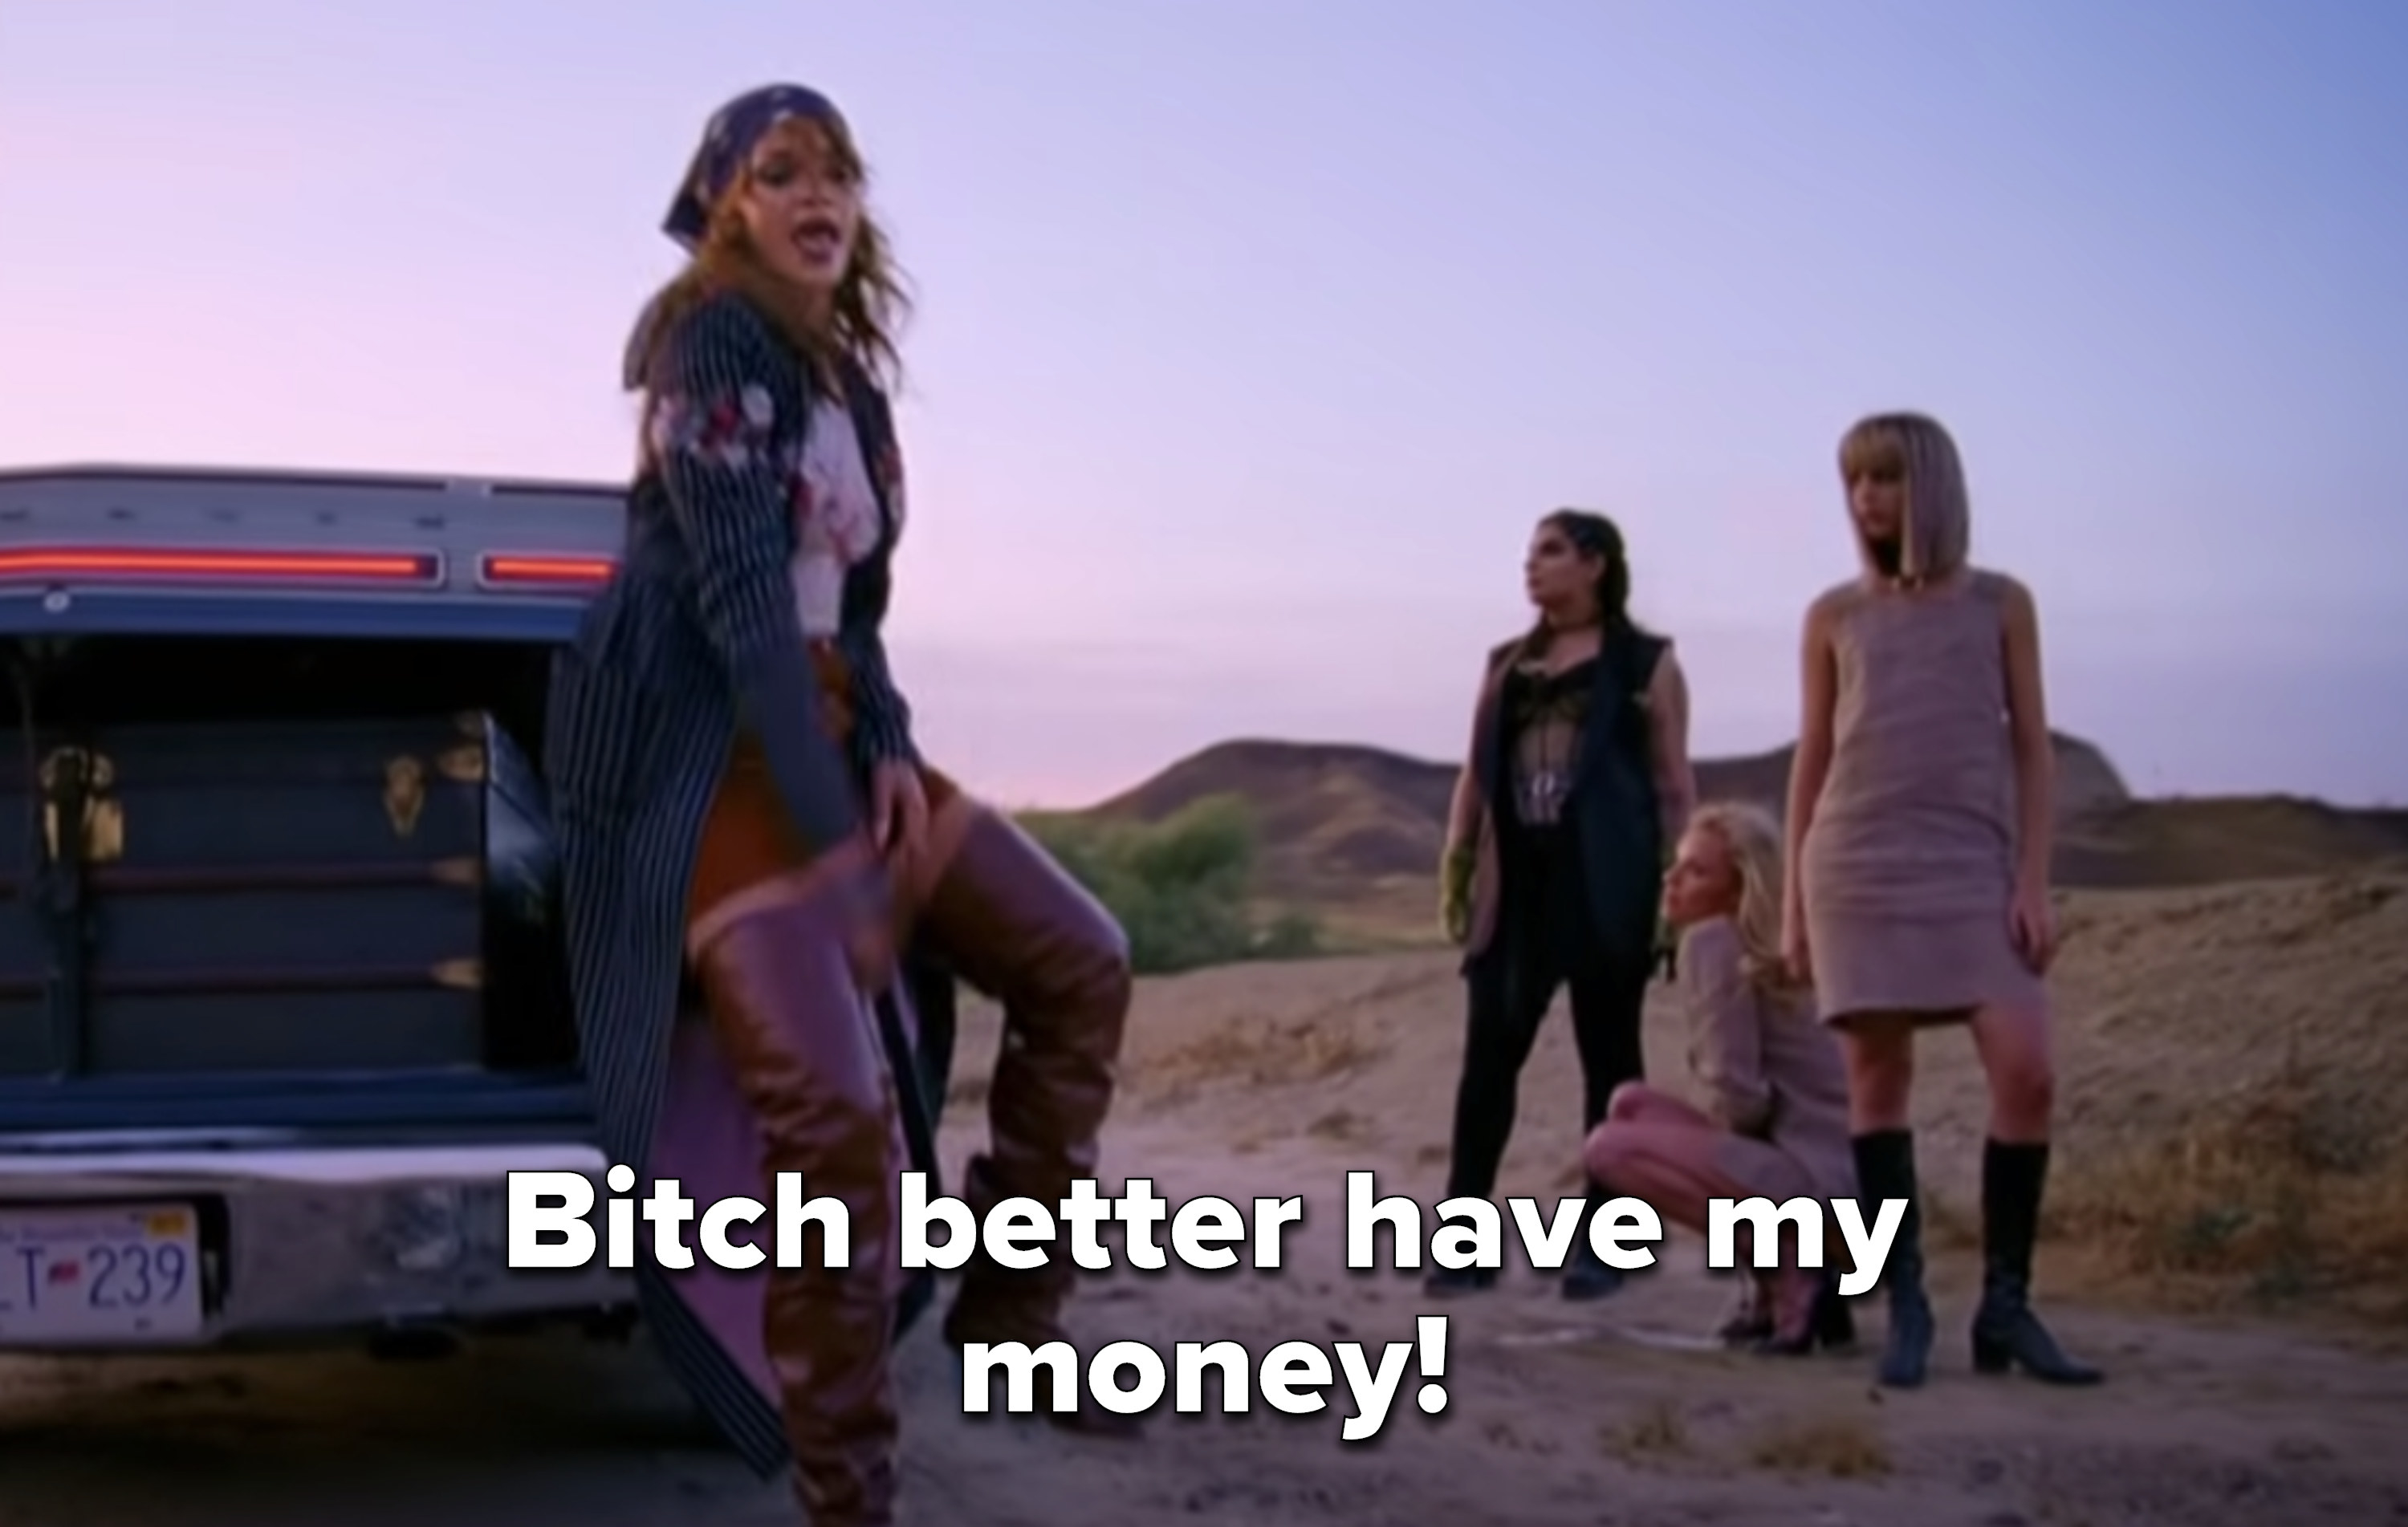 """Rihanna in front of an open trunk in the desert saying """"Bitch better have my money!"""""""